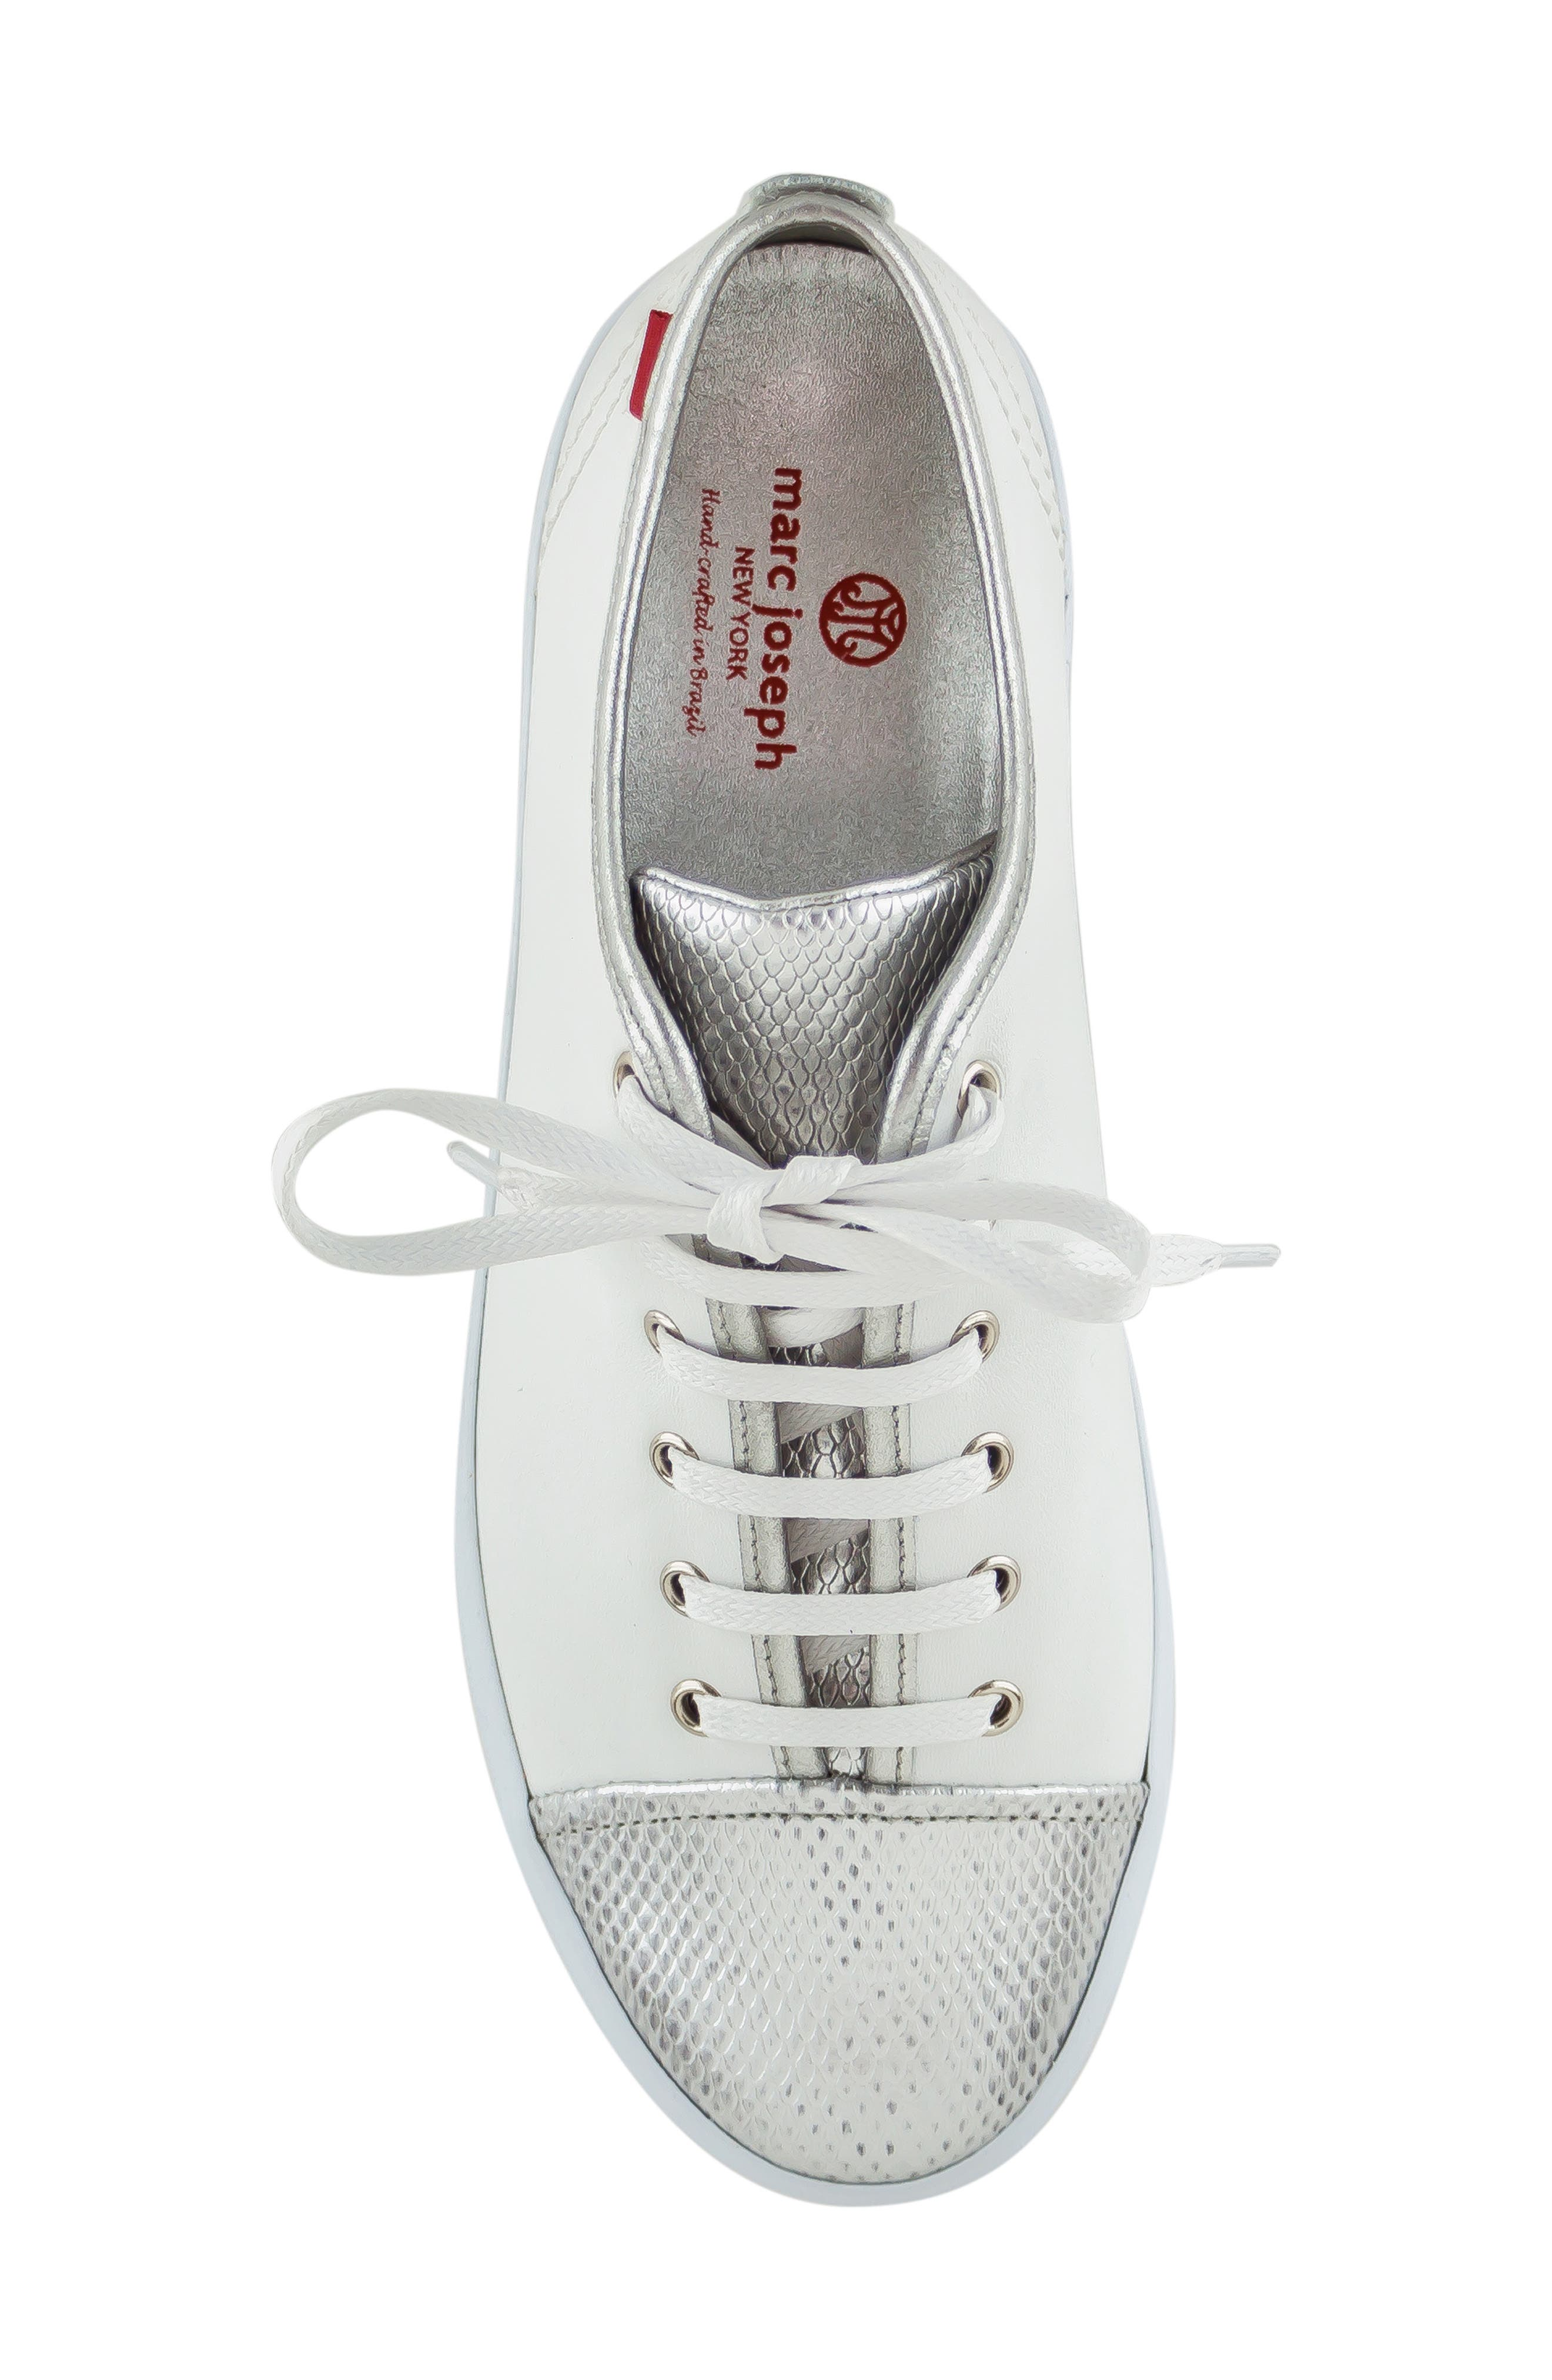 MARC JOSEPH NEW YORK, Bleecker Street Sneaker, Alternate thumbnail 5, color, WHITE/ GIPSY SILVER LEATHER